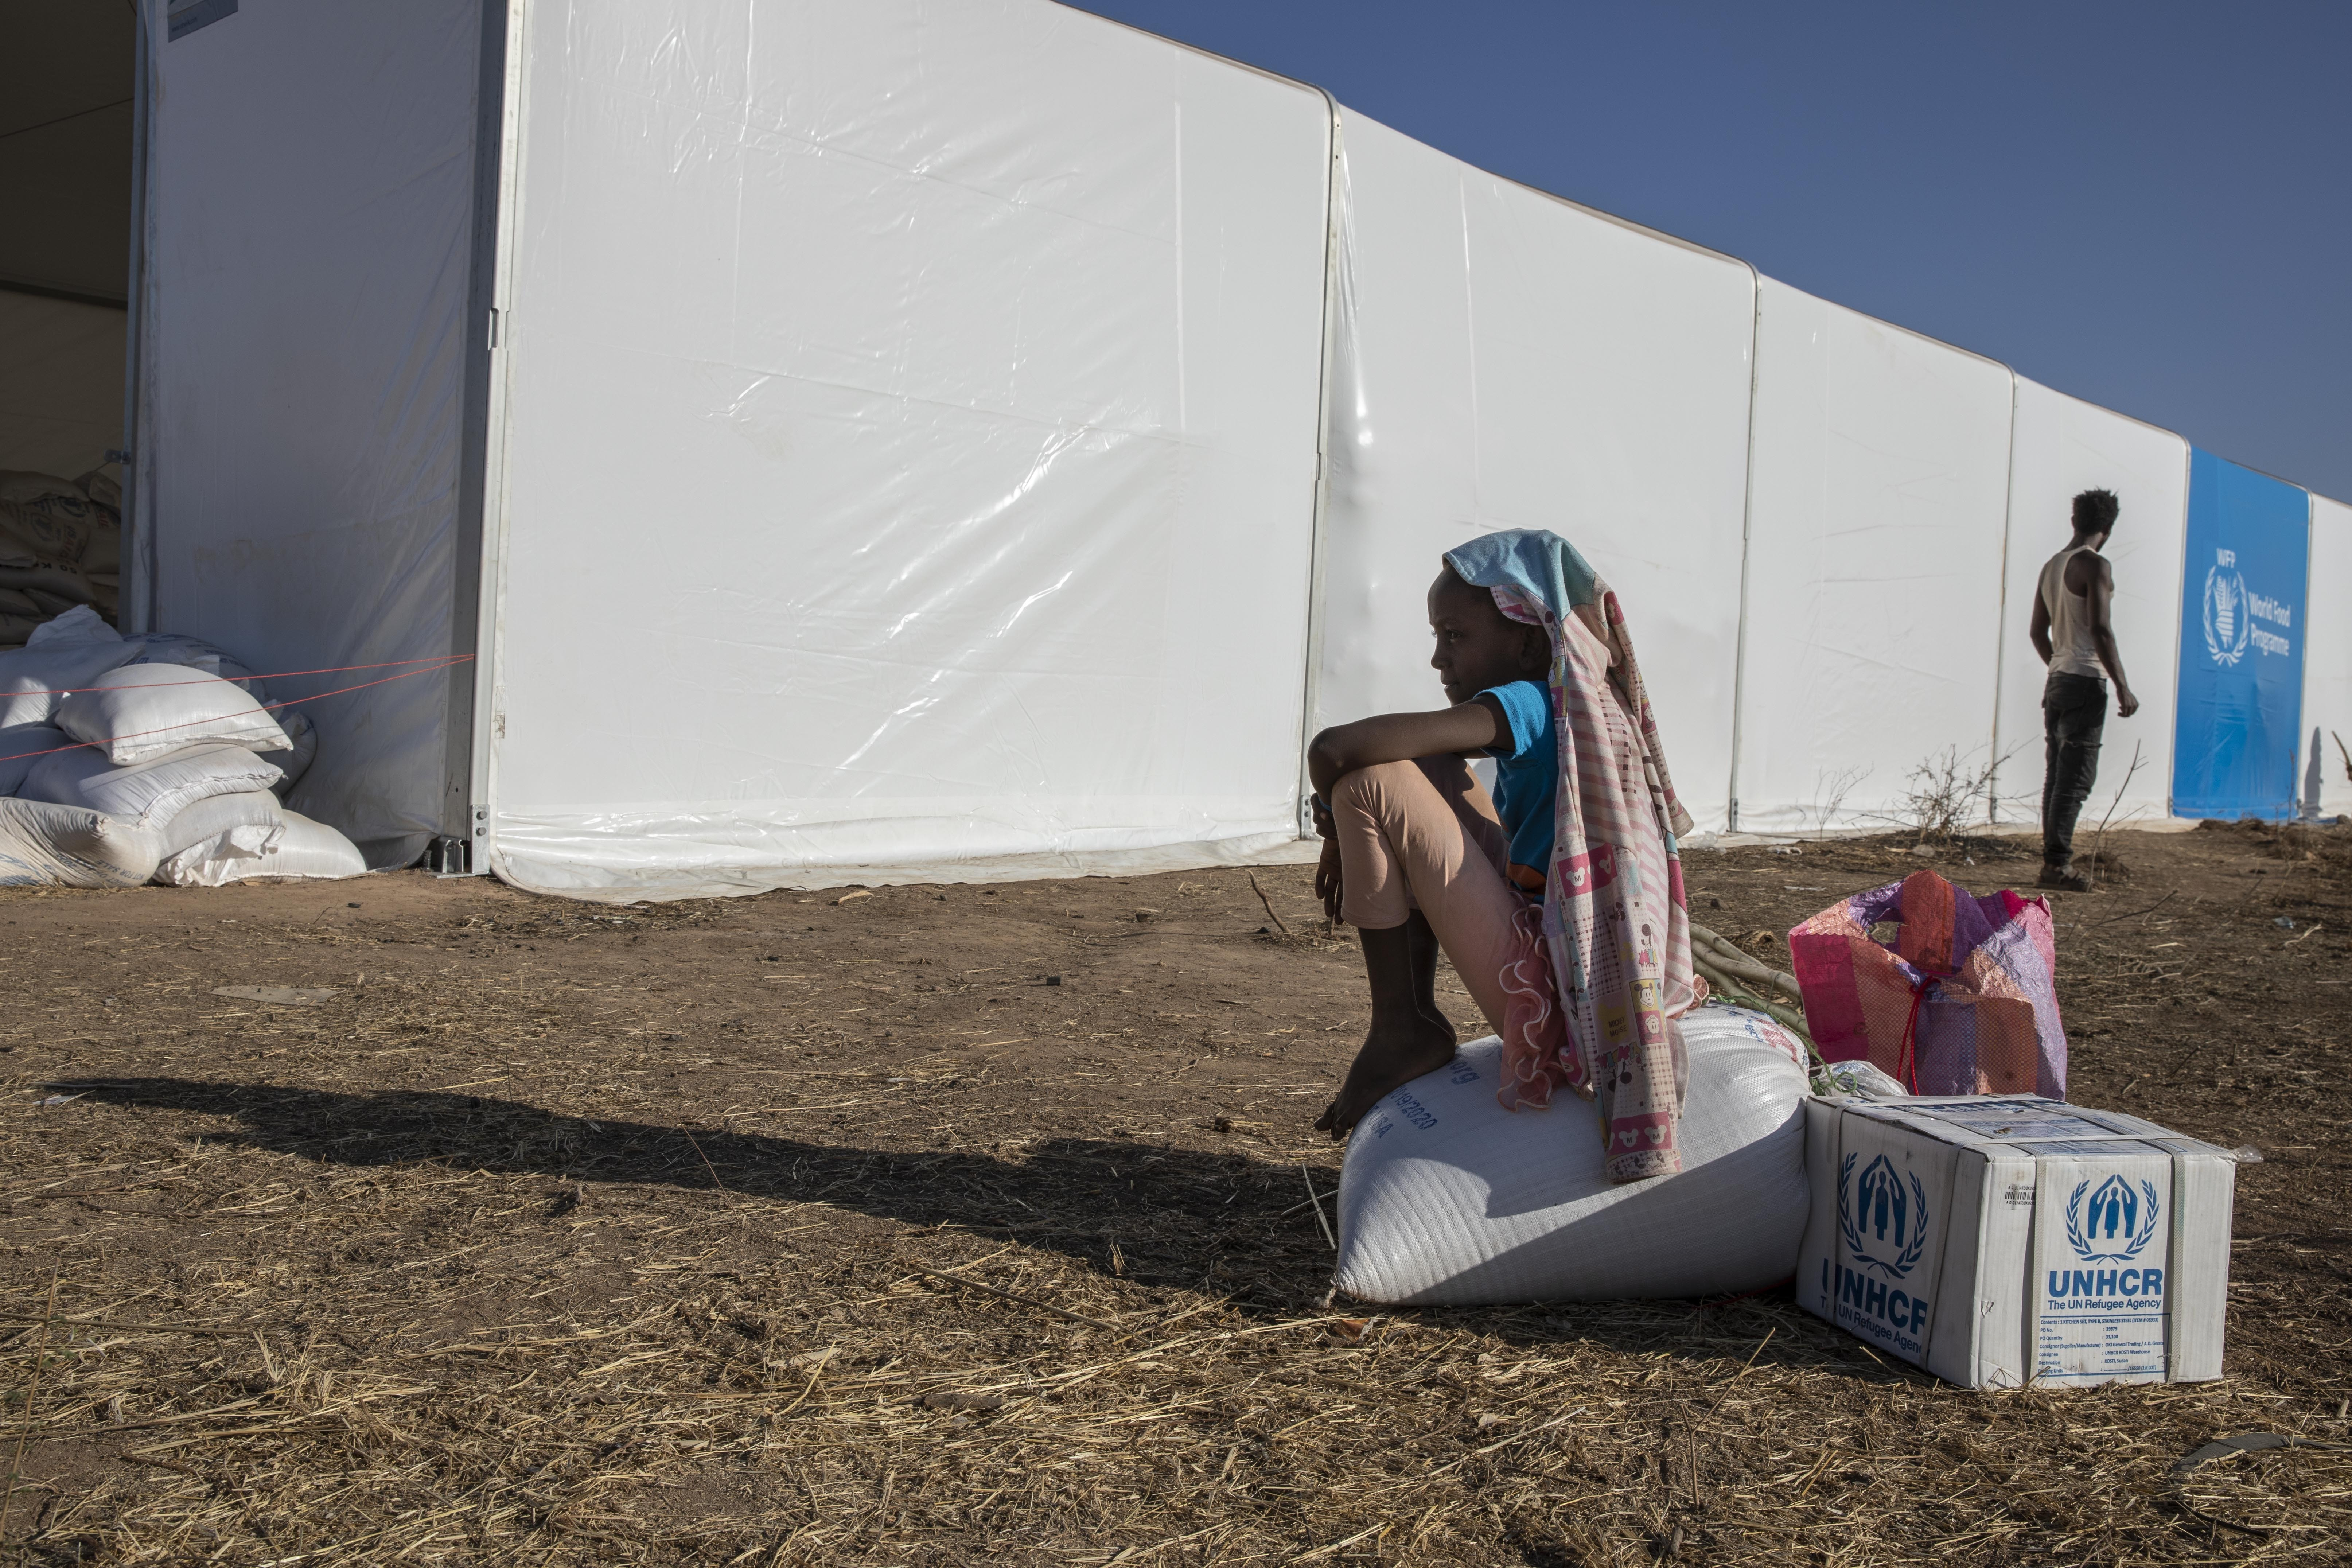 A Tigray refugee girl who fled the conflict in Ethiopia's Tigray region, sits on aid she received from the UNHCR and WFP at Umm Rakouba refugee camp in Qadarif, eastern Sudan, Tuesday, Nov. 24, 2020. Photo: AP